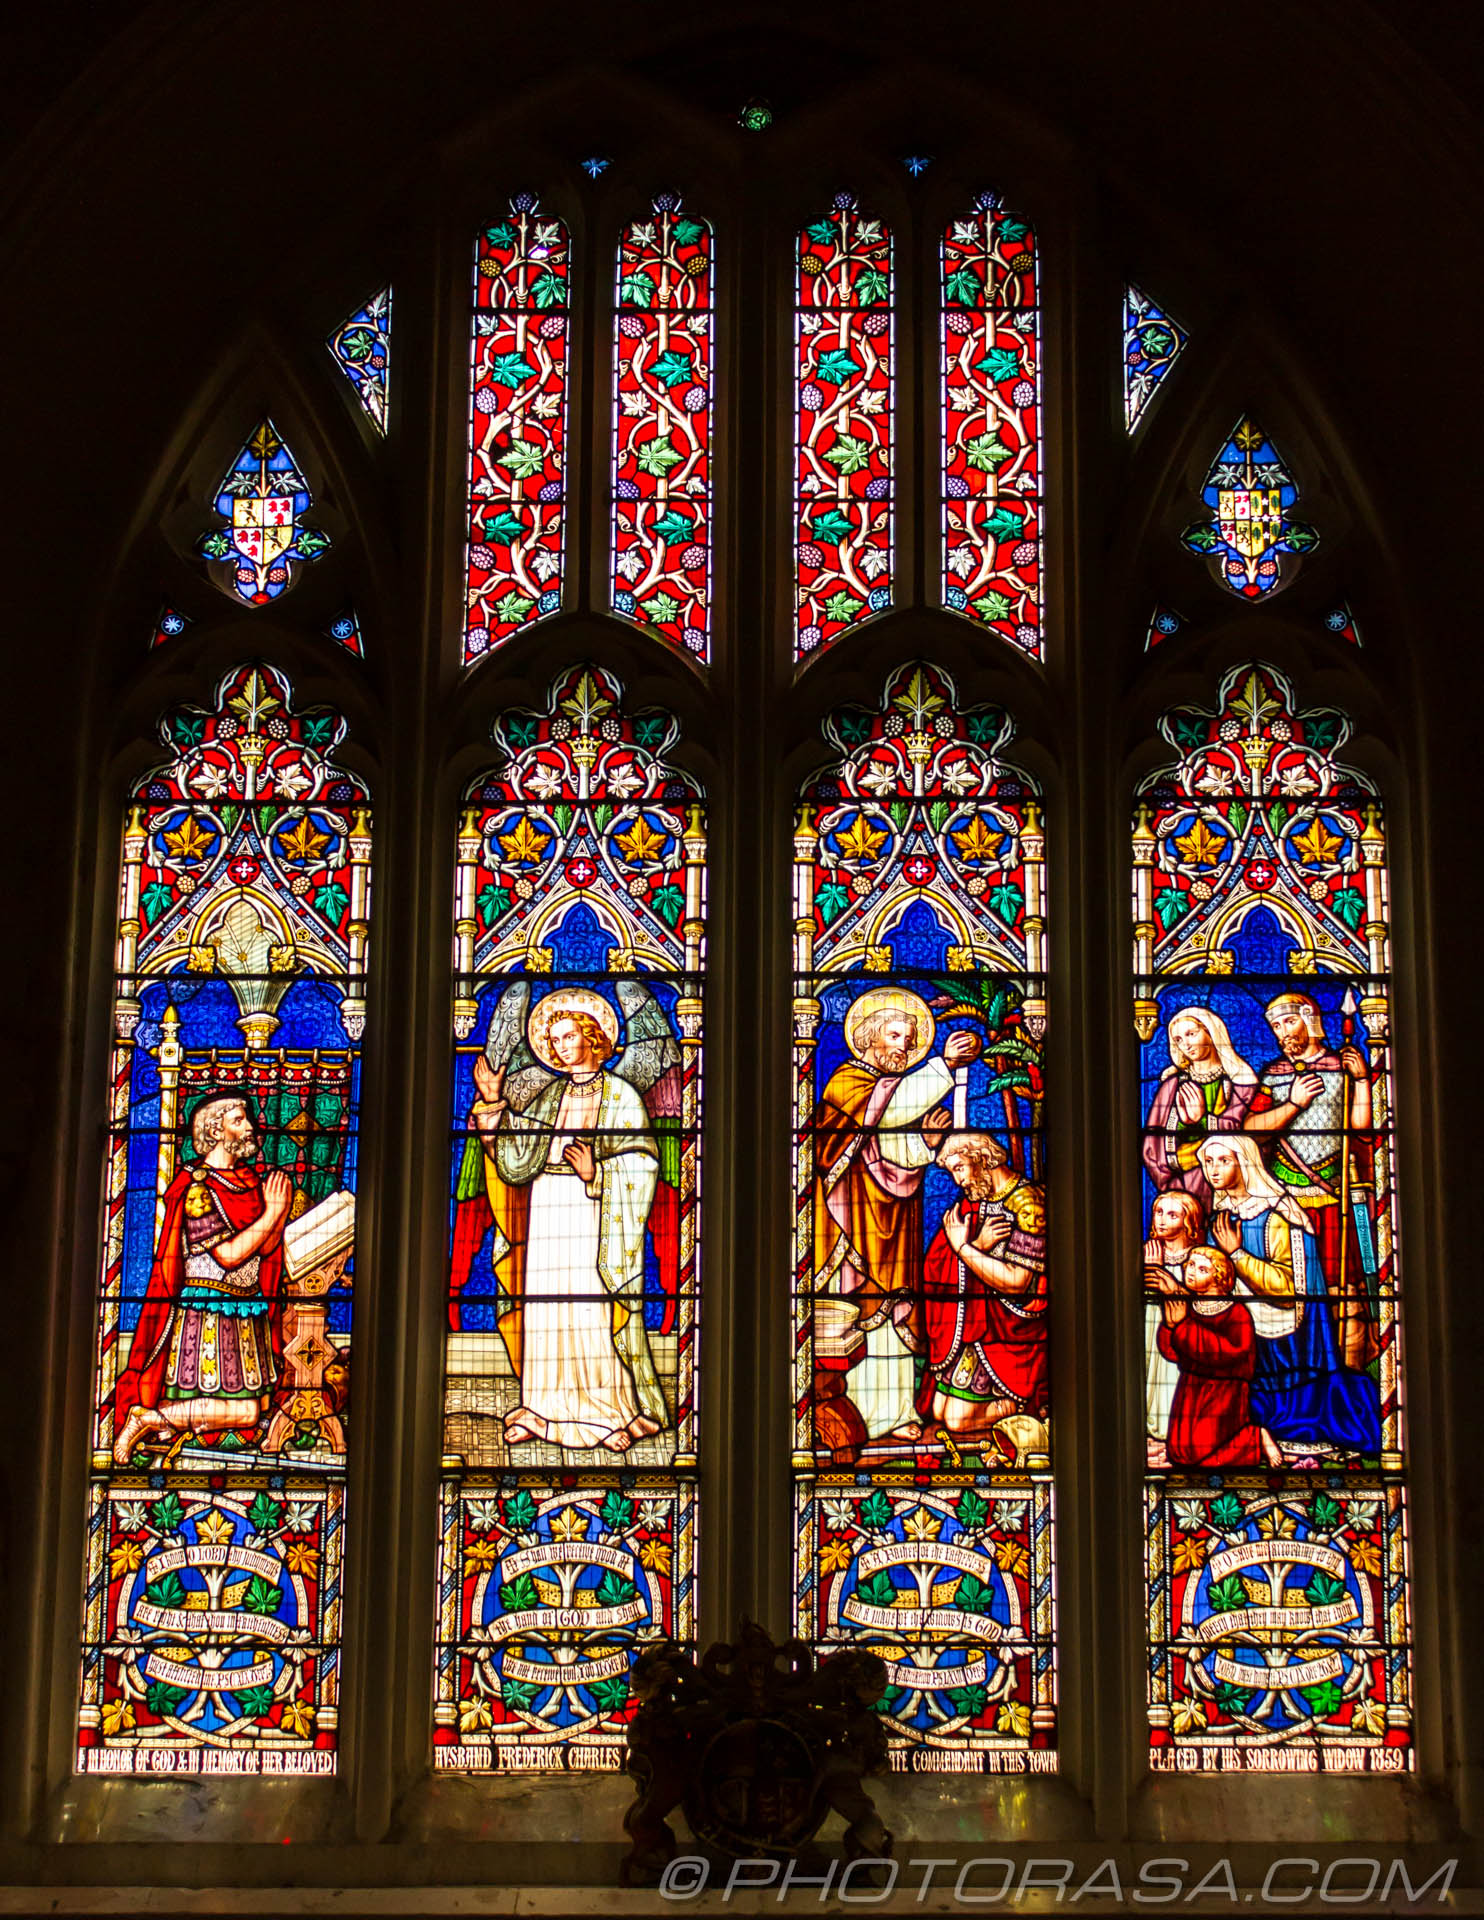 https://photorasa.com/inside-all-saints-church-in-maidstone/stained-glass-window-at-maidstone-all-saints/